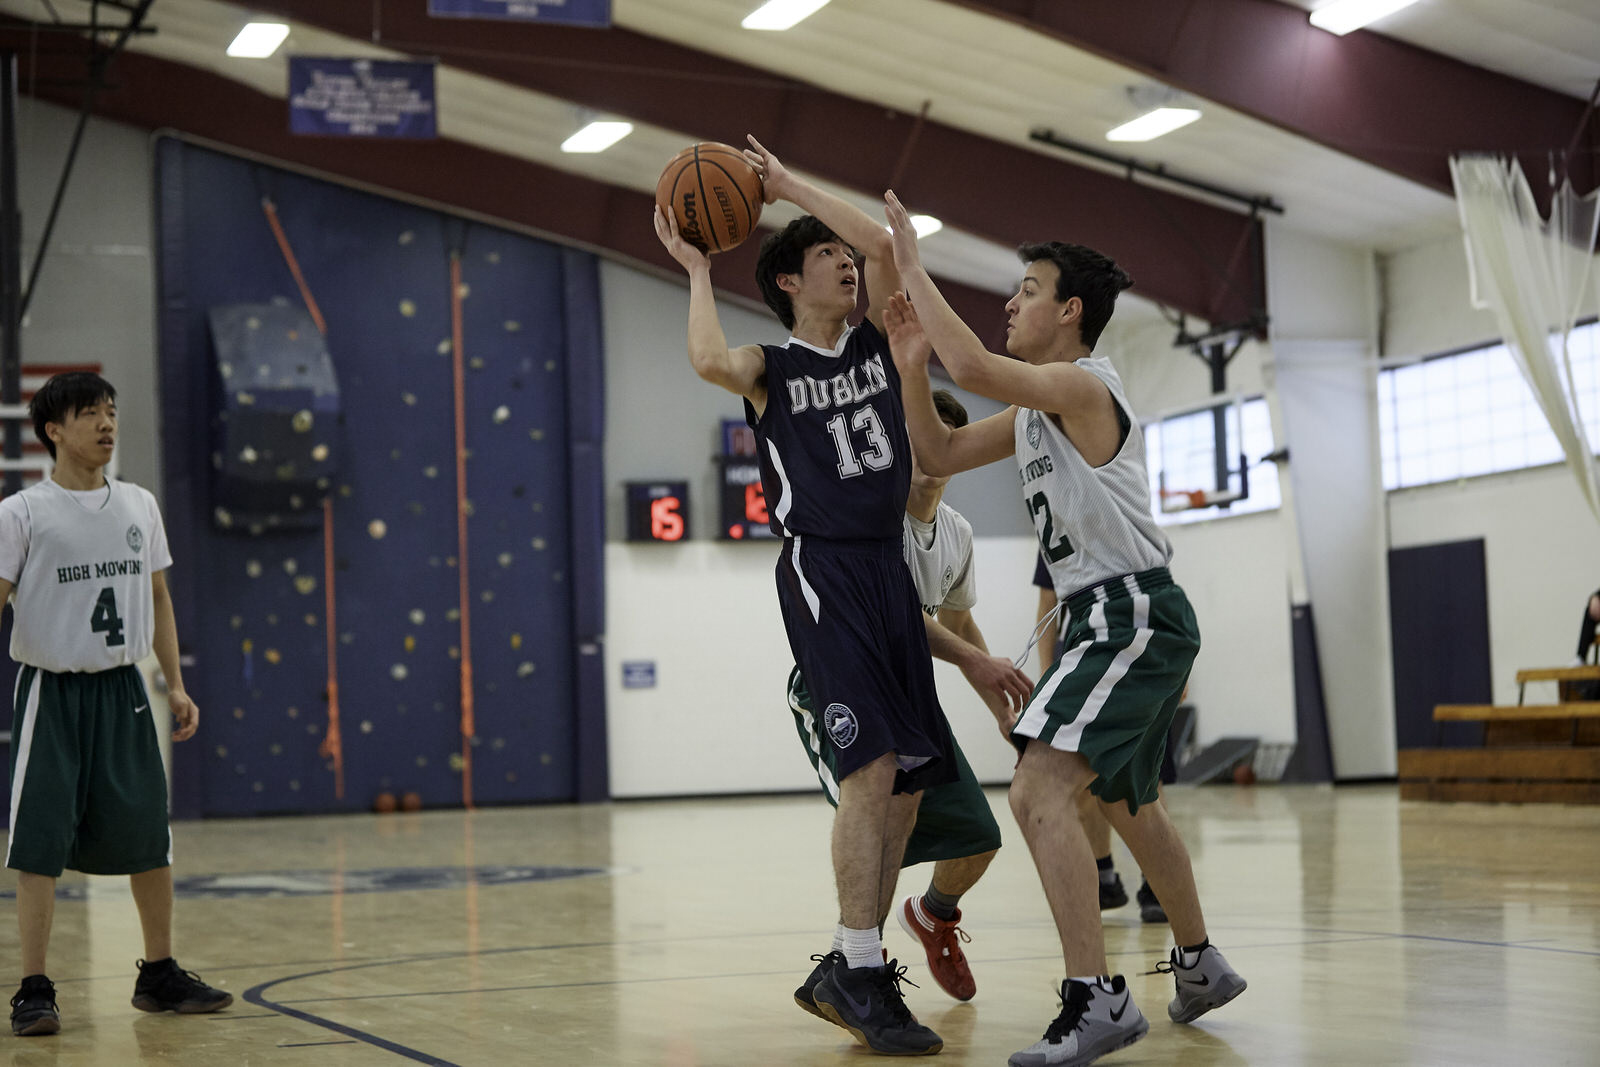 Dublin JV Boys Basketball vs High Mowing School - Jan 26 2019 - 0116.jpg